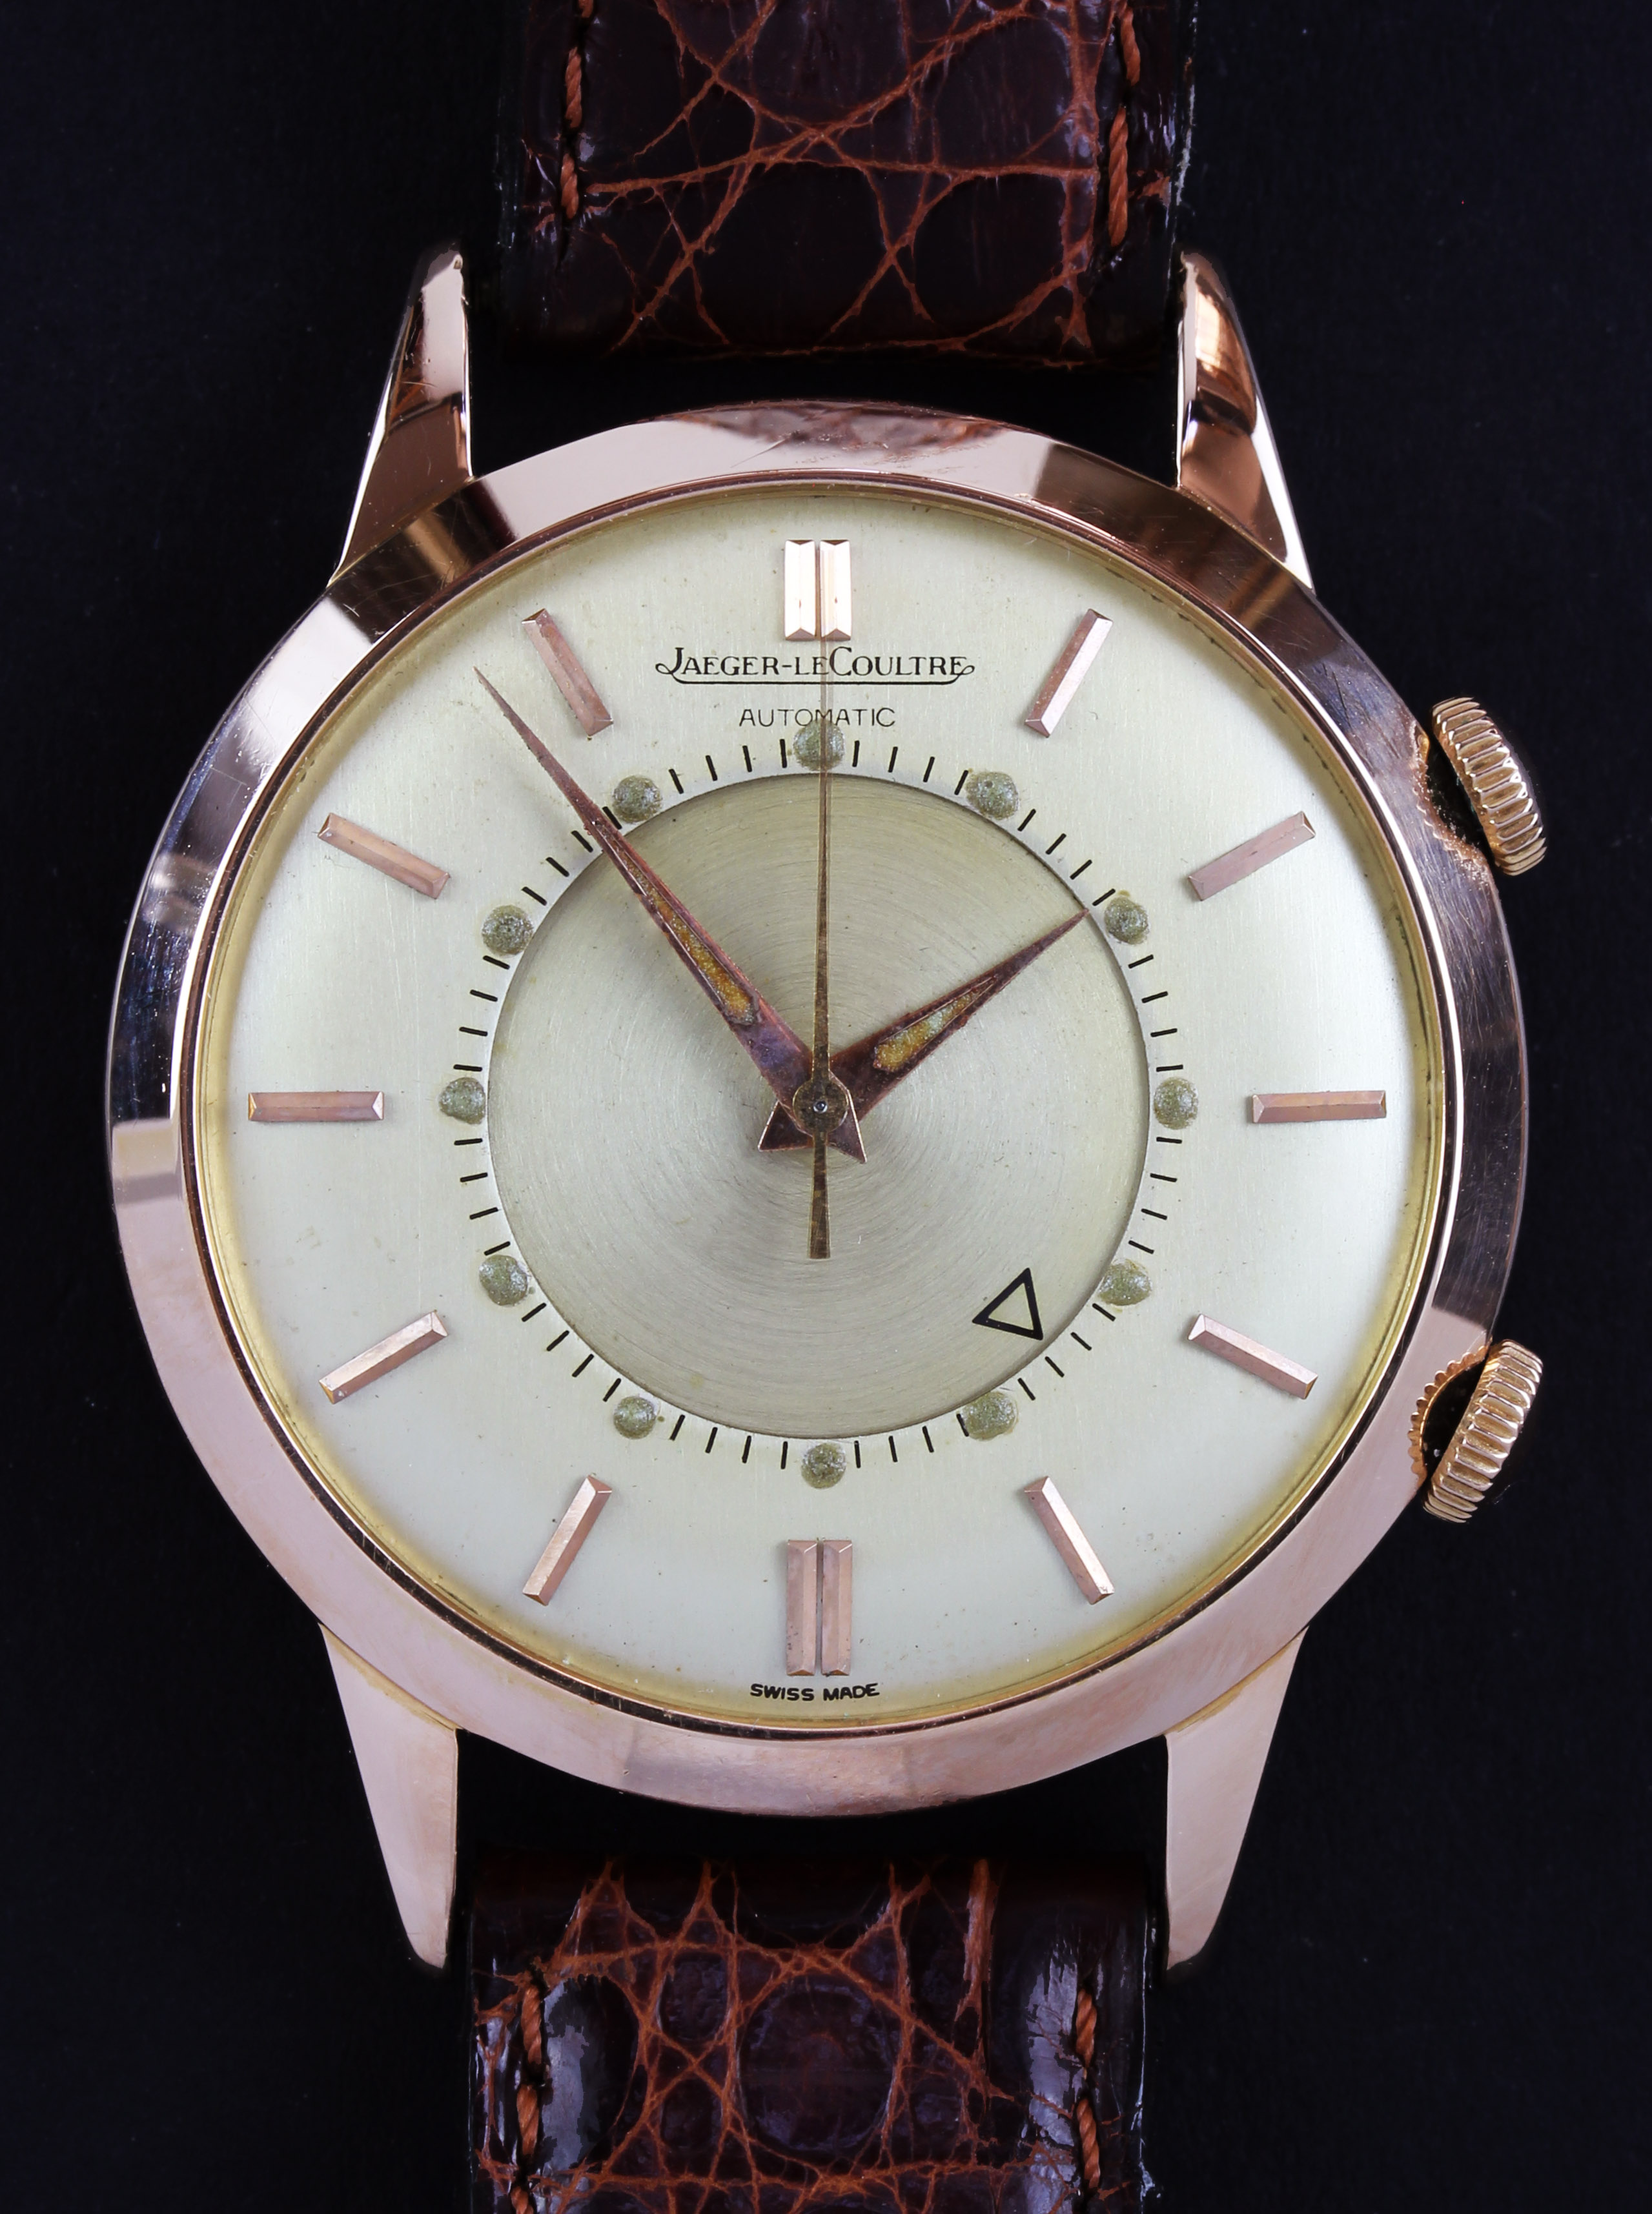 JLC Memovox in pink gold with original papers